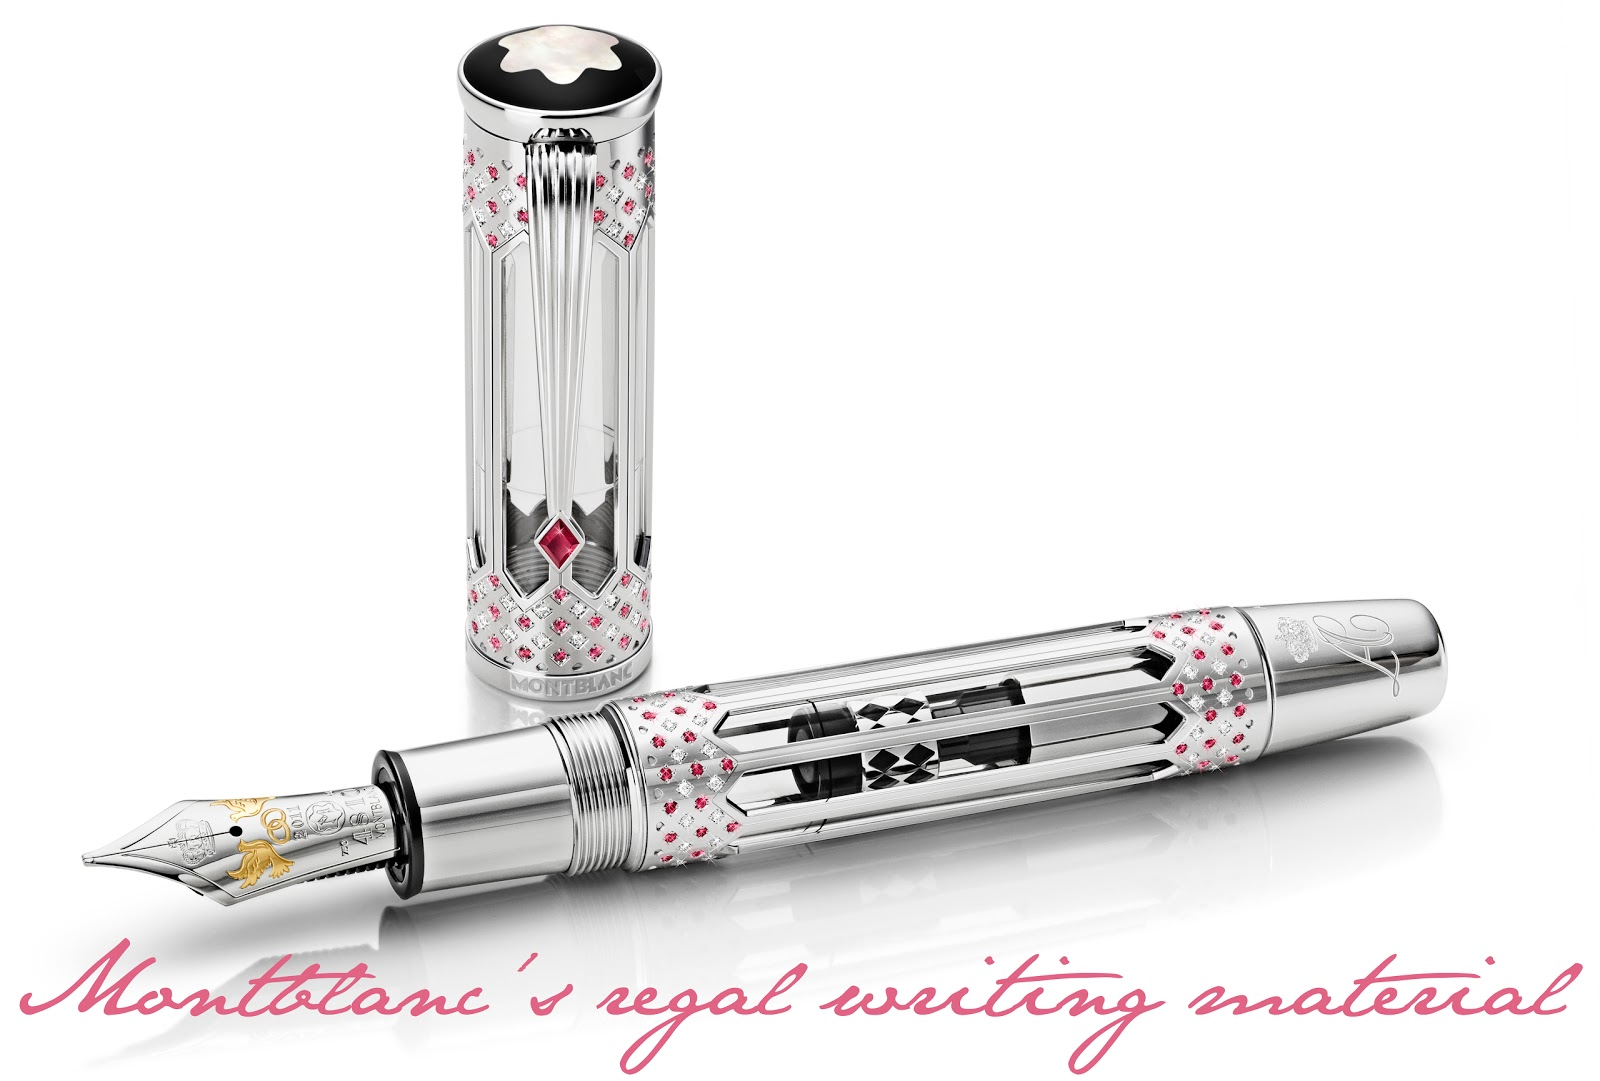 to give you a first look at the exclusive Montblanc writing instrument